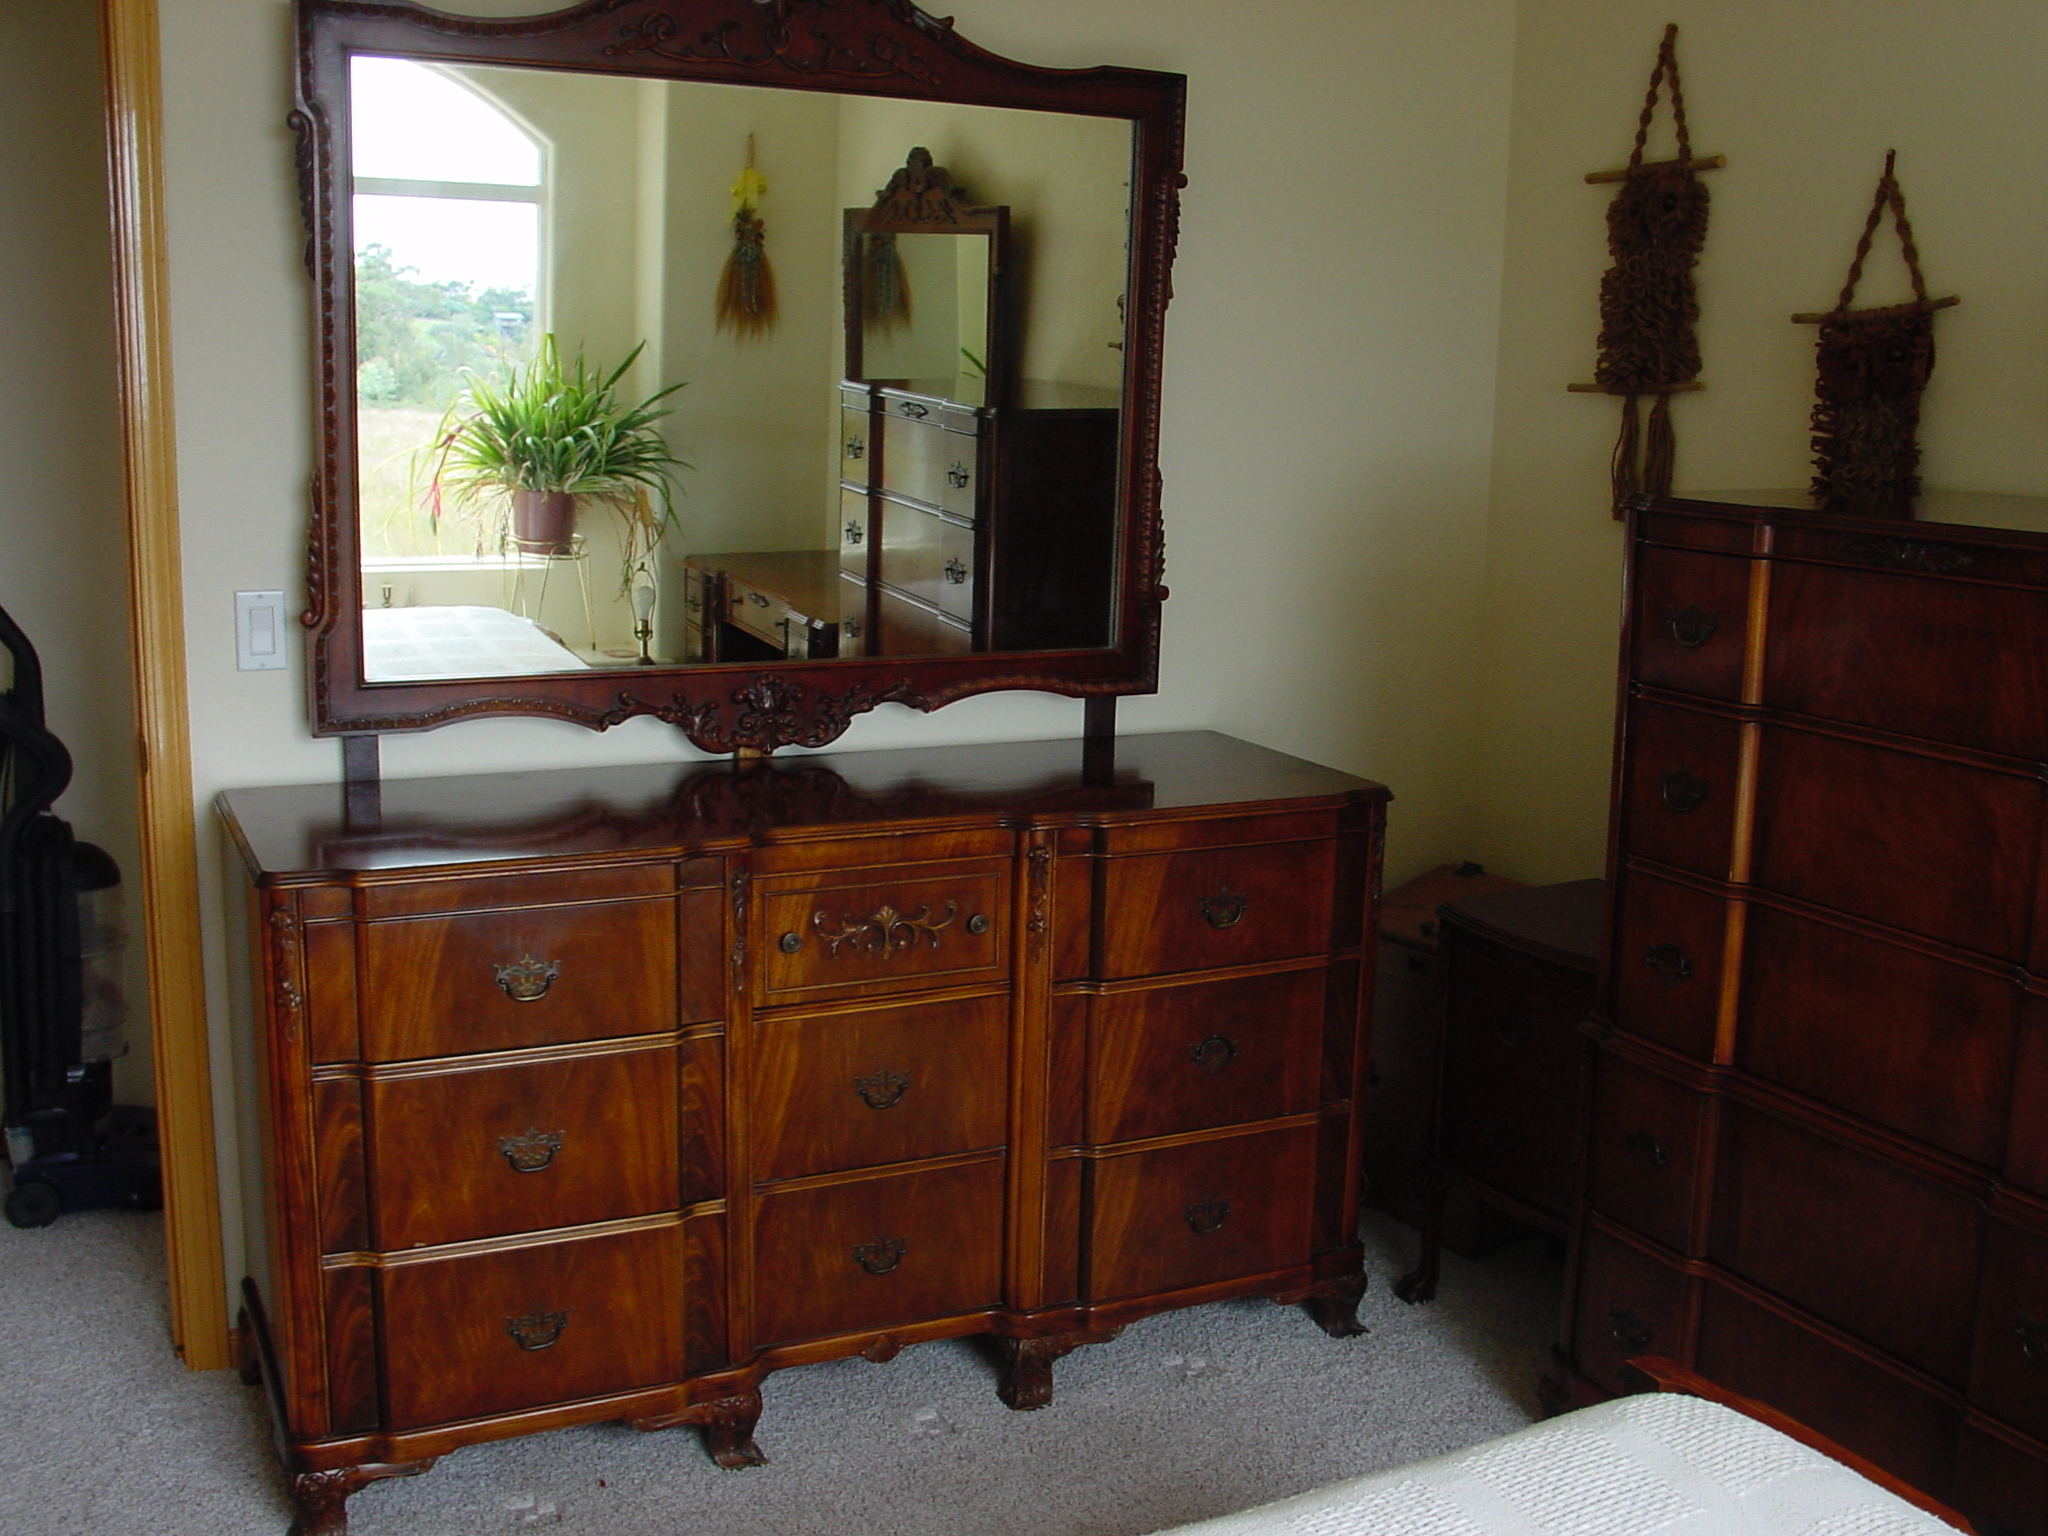 Chippendale revival circa 1940 5 pc bedroom set for sale for Bedroom sets for sale